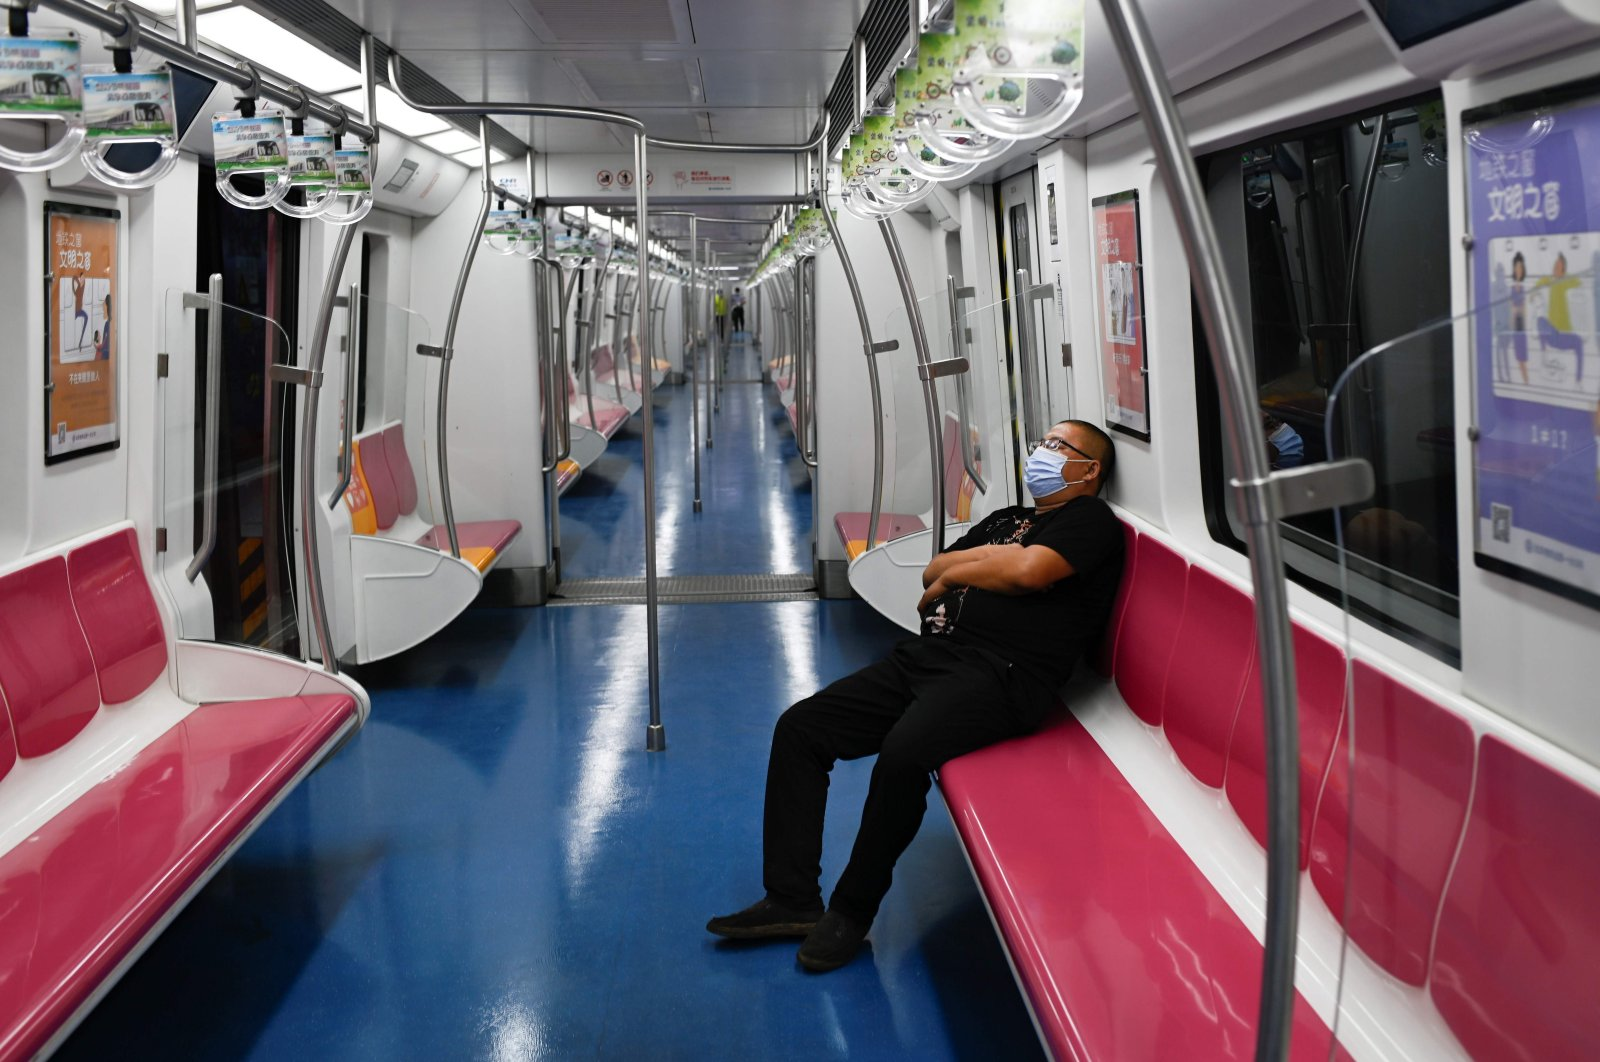 A man wearing a face mask sits on a subway train in Beijing on June 20, 2020 (AFP Photo)